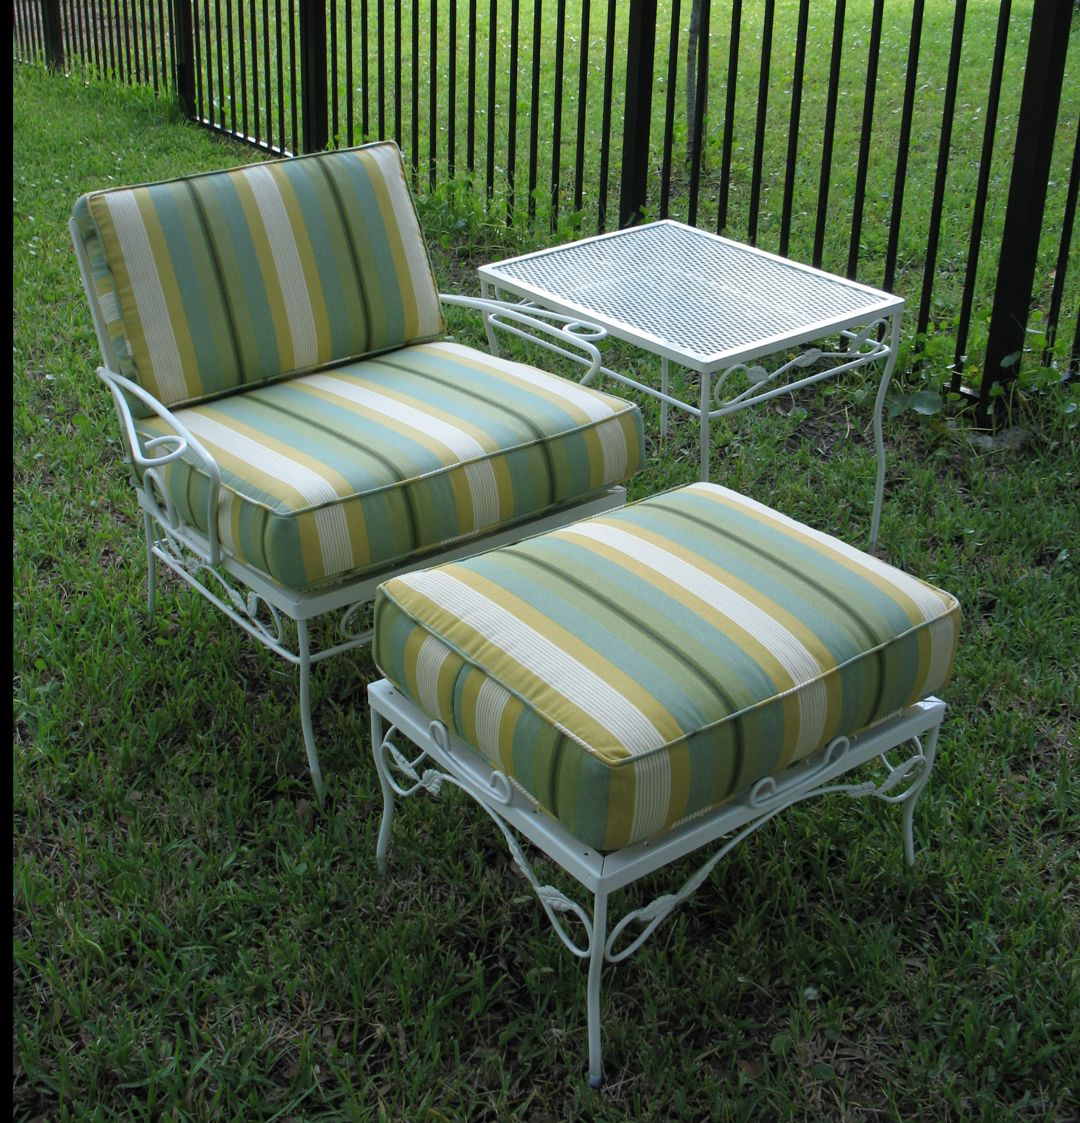 Metal patio lounge chairs - Vintage Metal Furniture Vintage Patio Furniture Mulberry Street